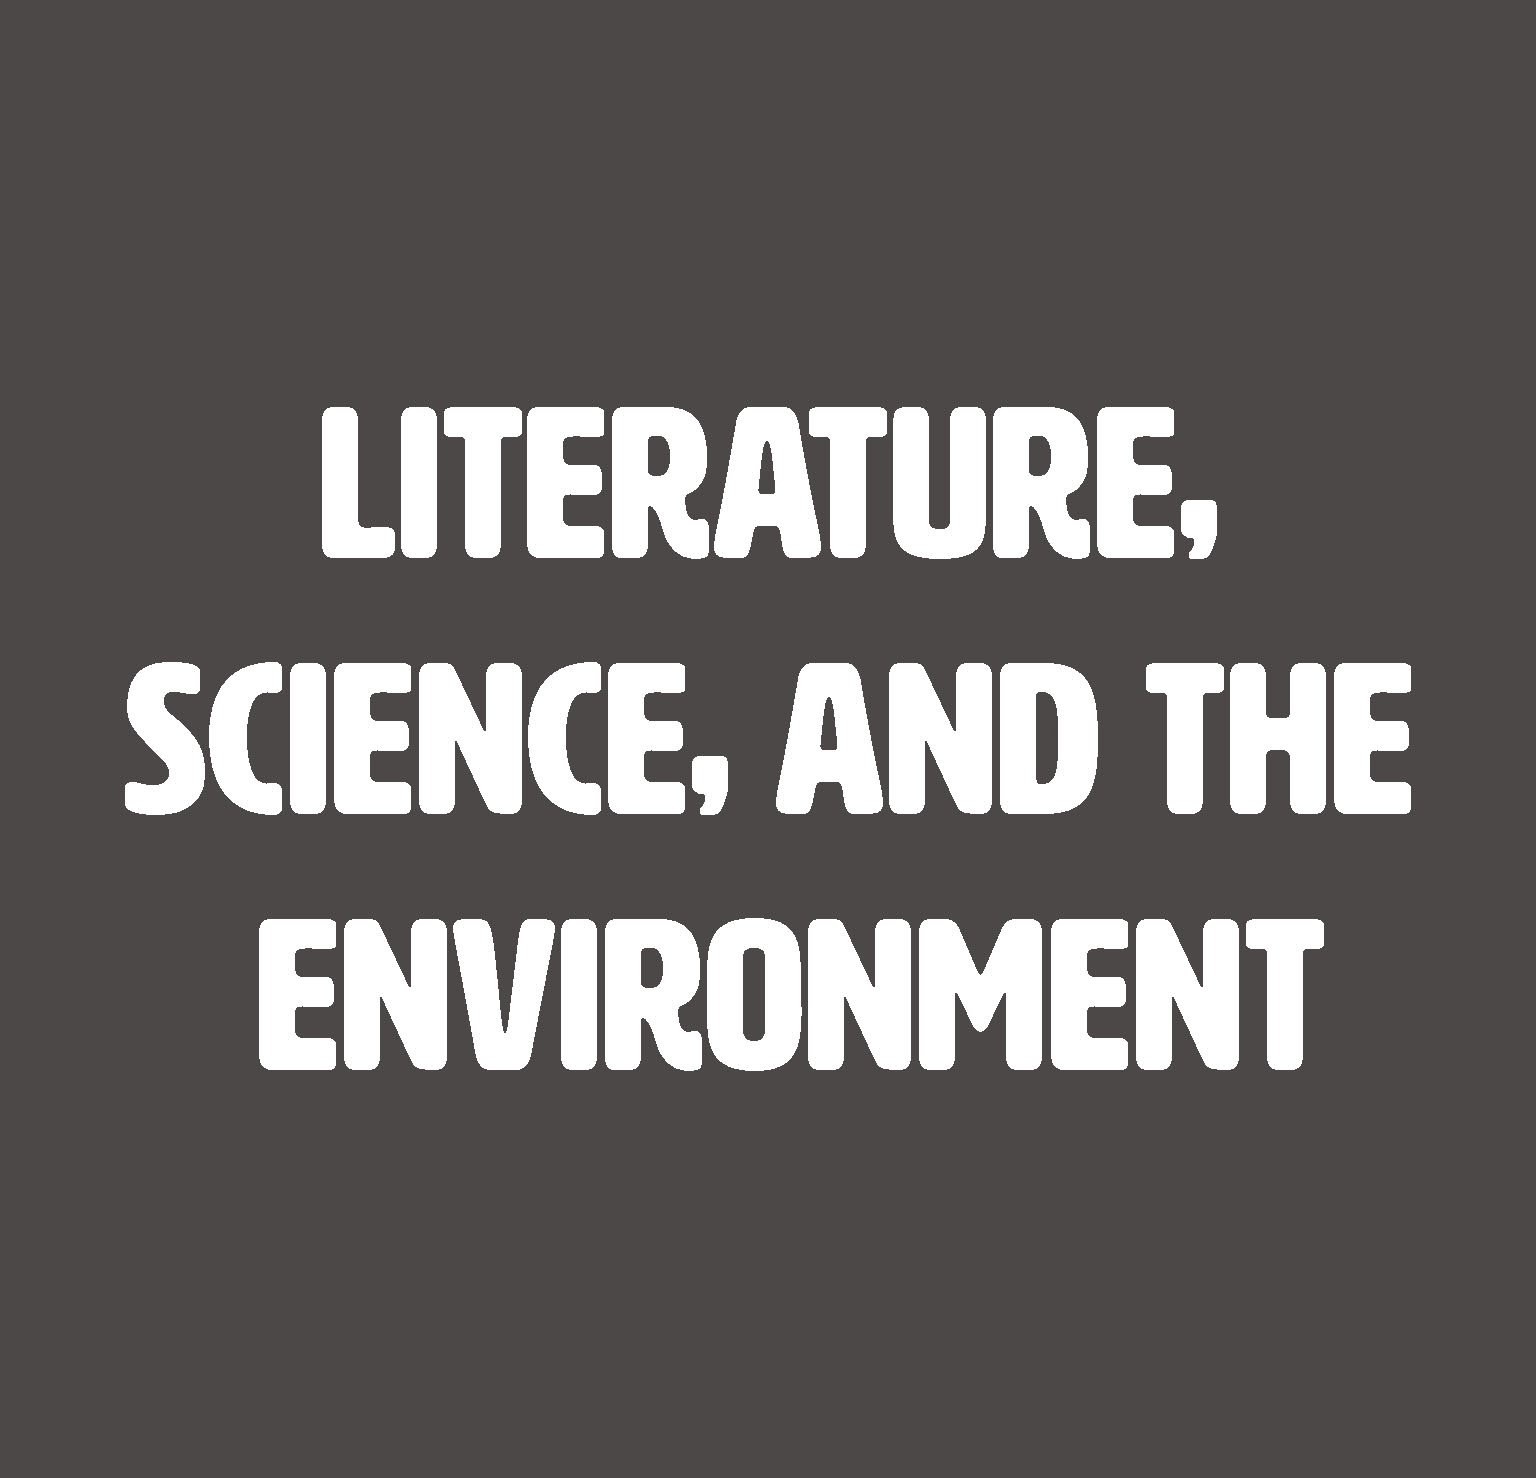 Literature, Science, and the Environment